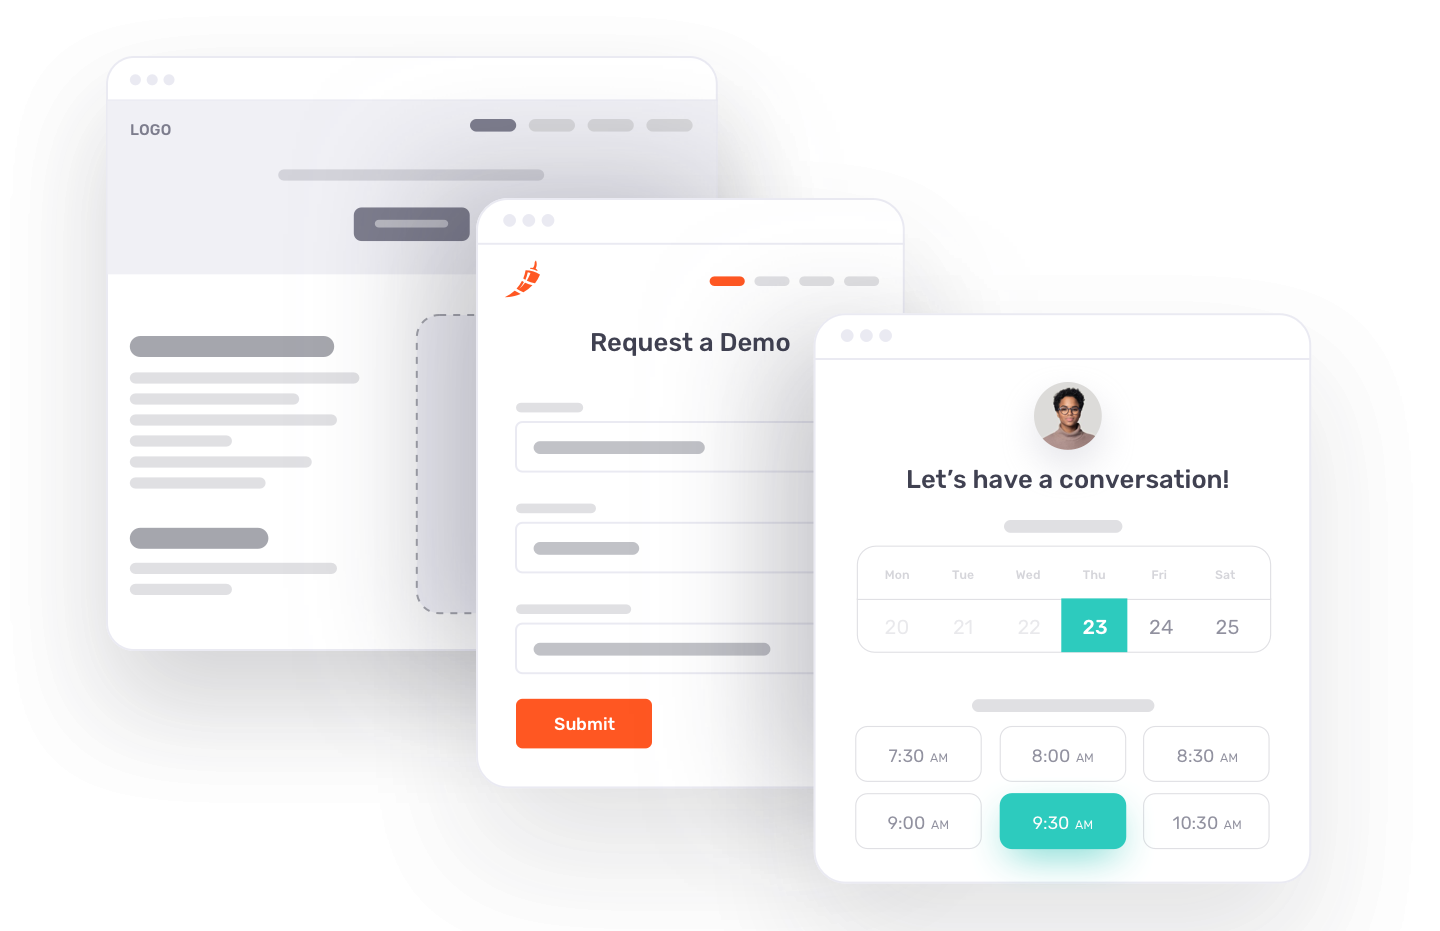 Chili Piper's meeting scheduling software